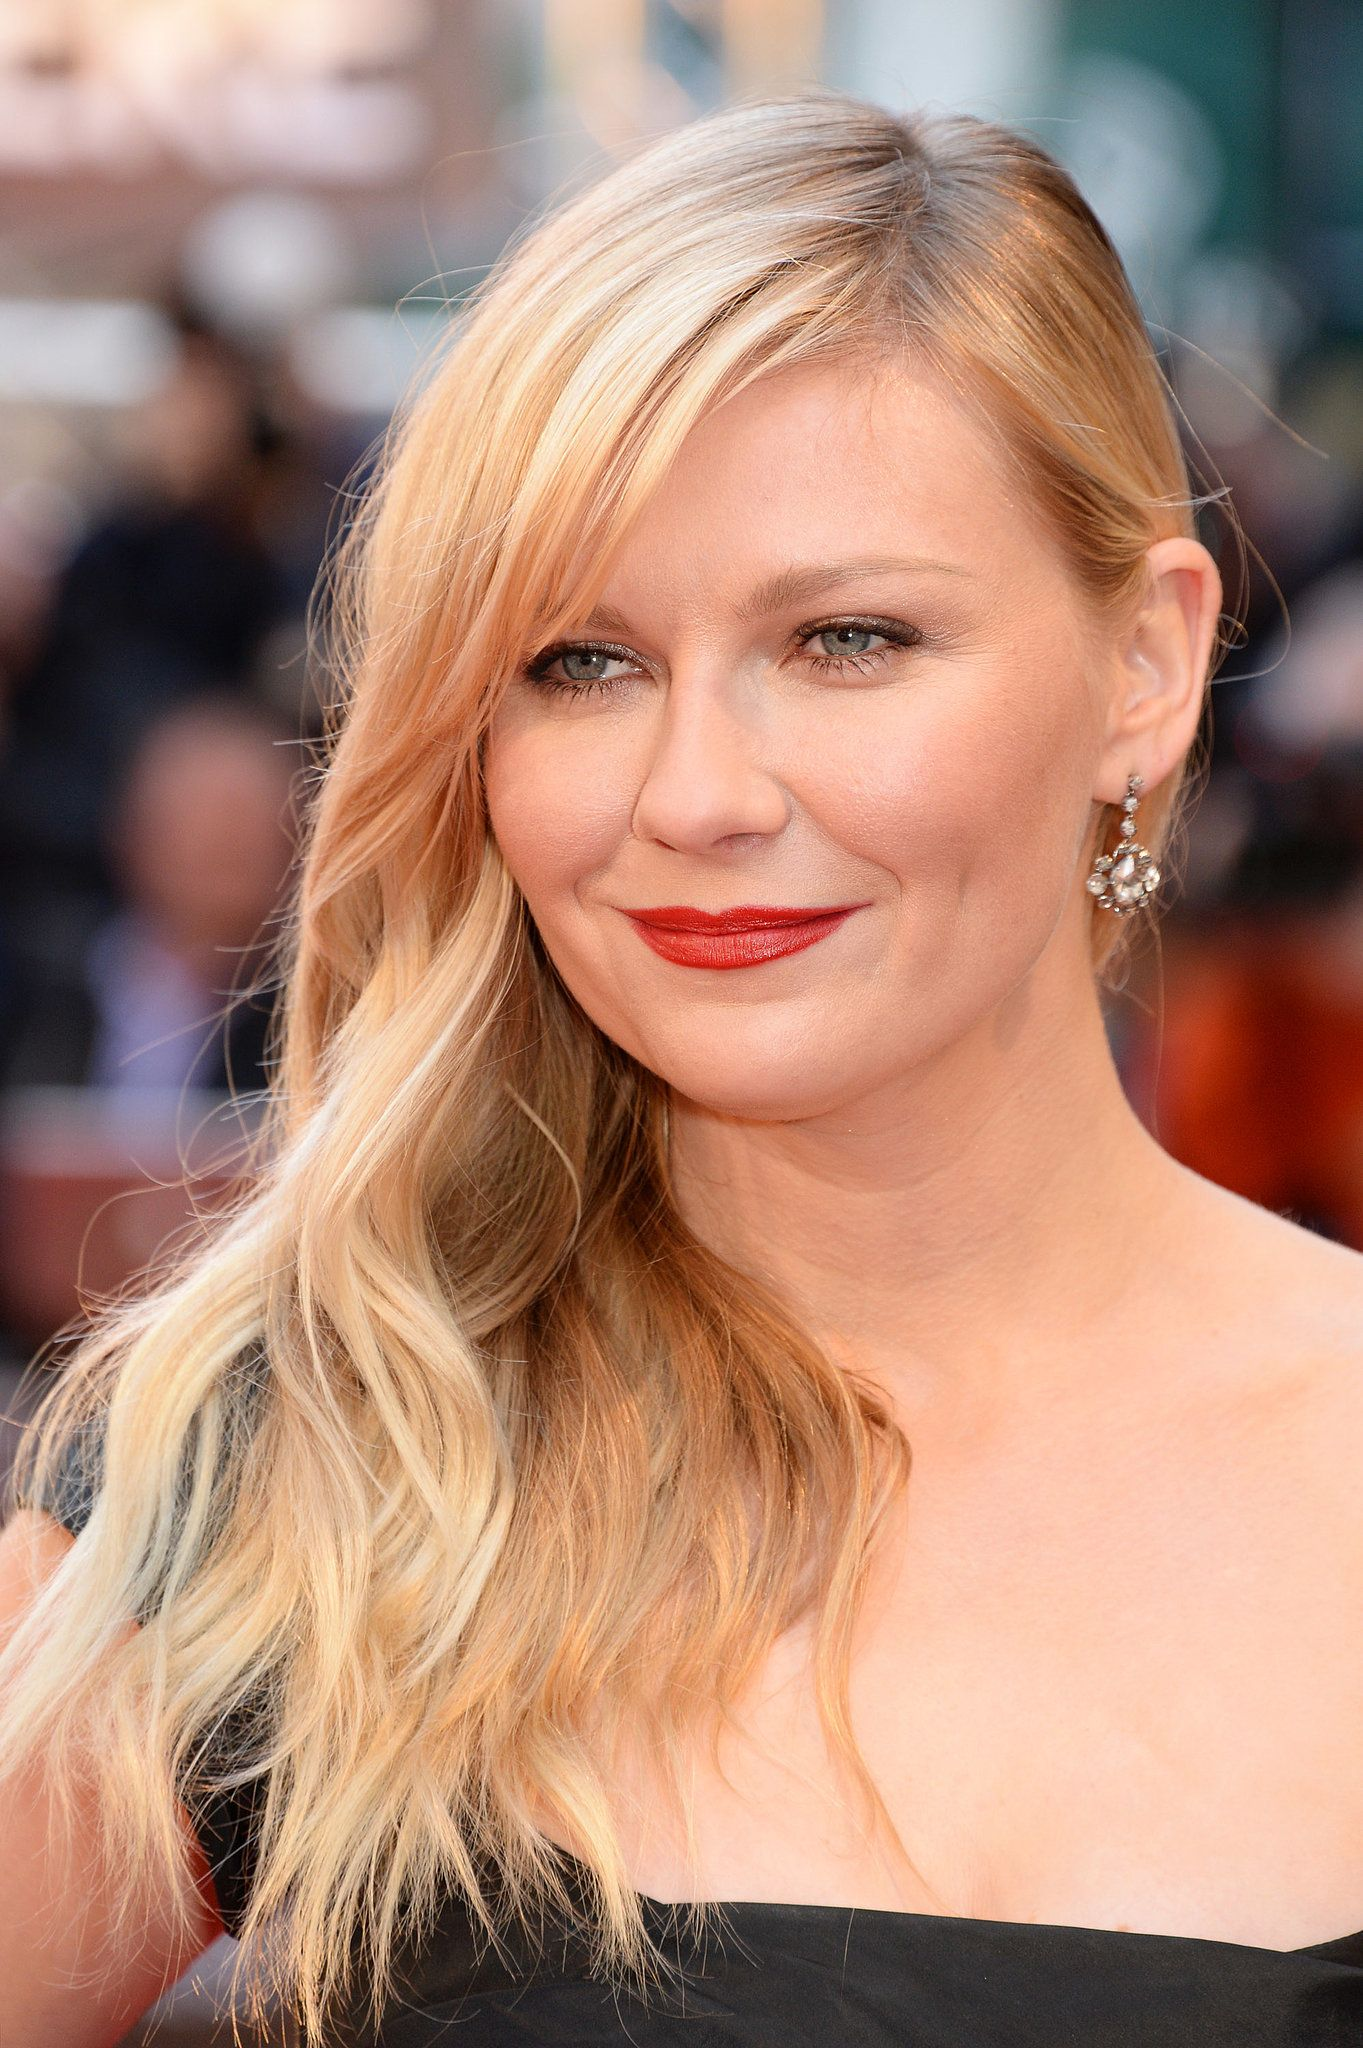 Double side haircut for boys kirsten dunst  kirsten dunst cannes film festival and lips